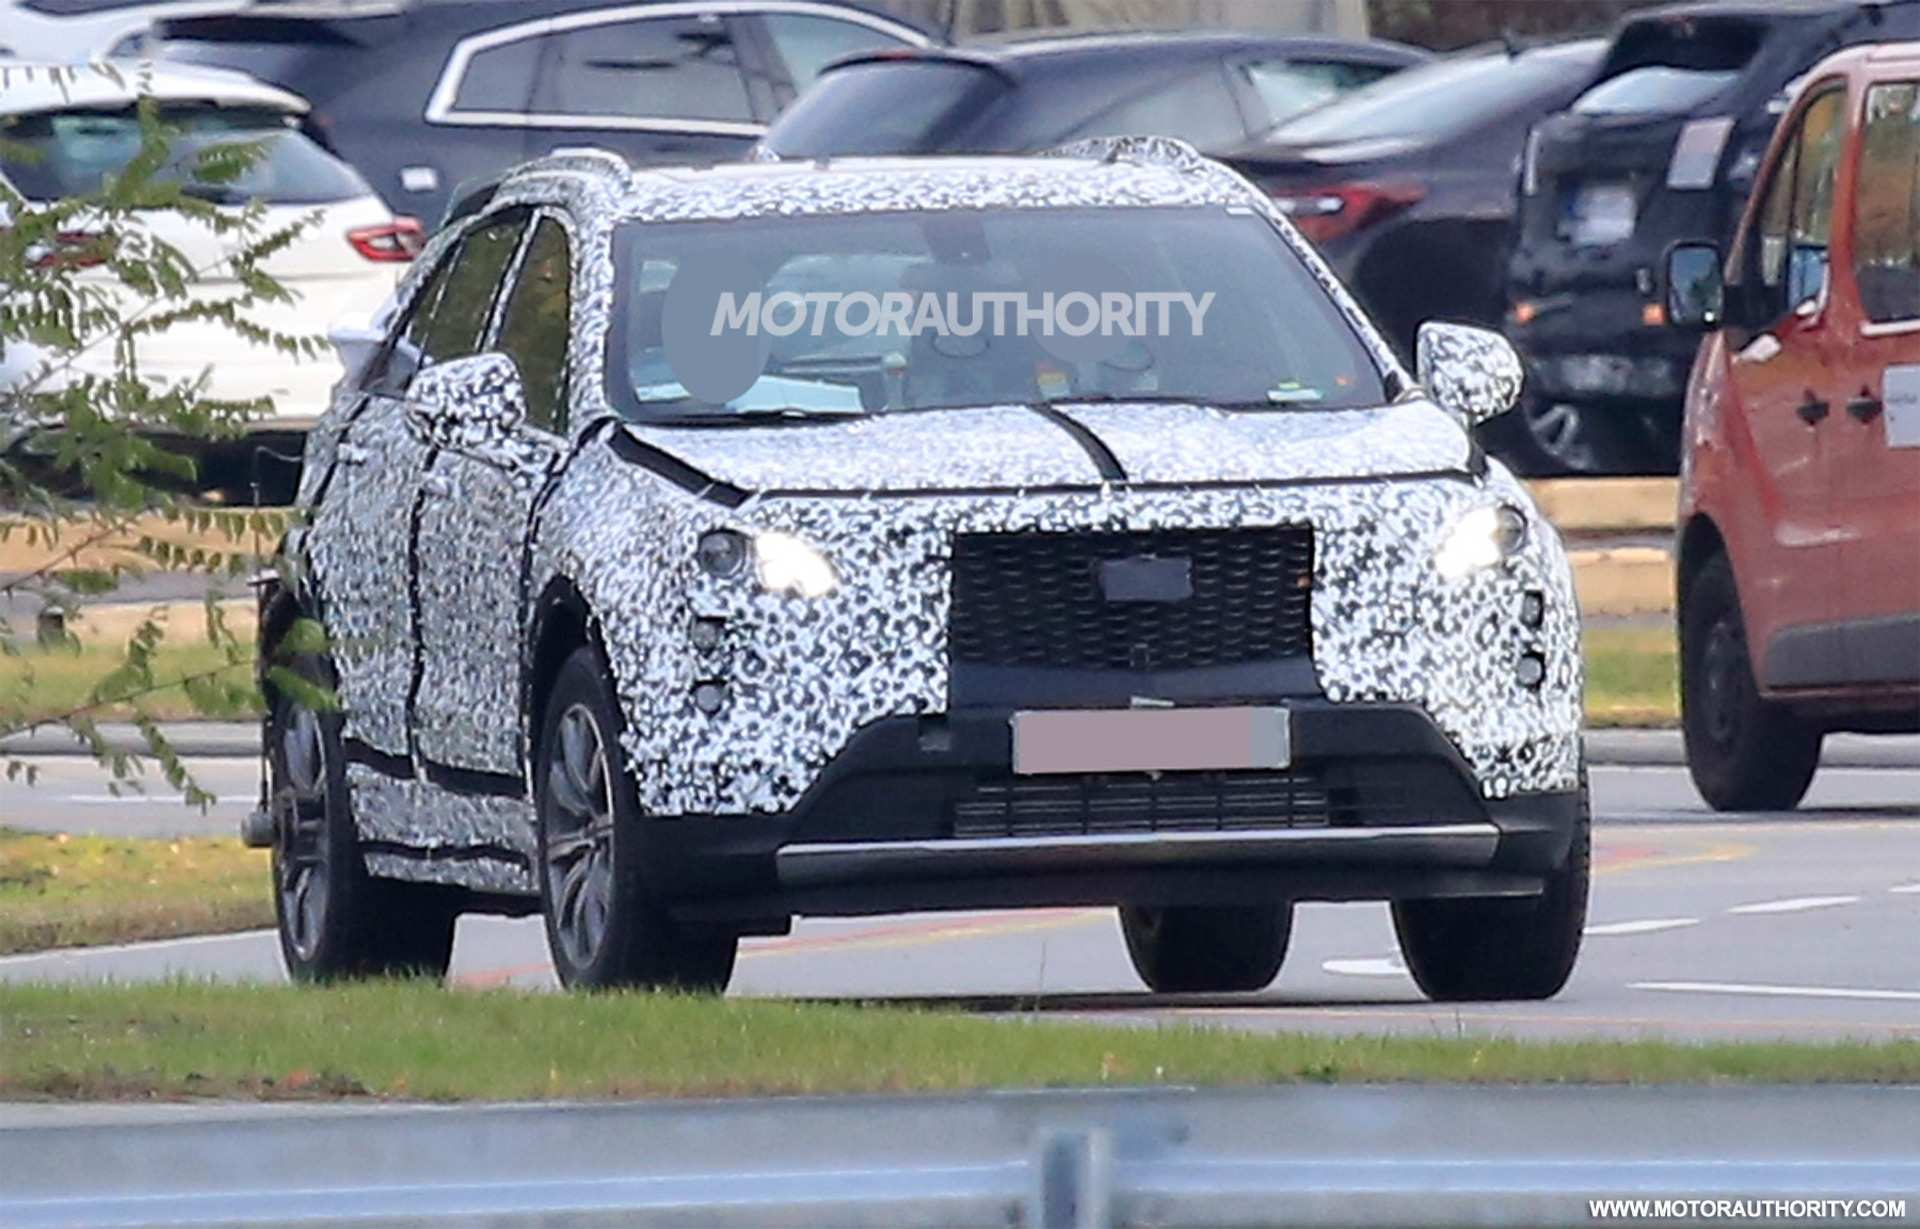 75 New 2019 Spy Shots Cadillac Xt5 Performance and New Engine for 2019 Spy Shots Cadillac Xt5